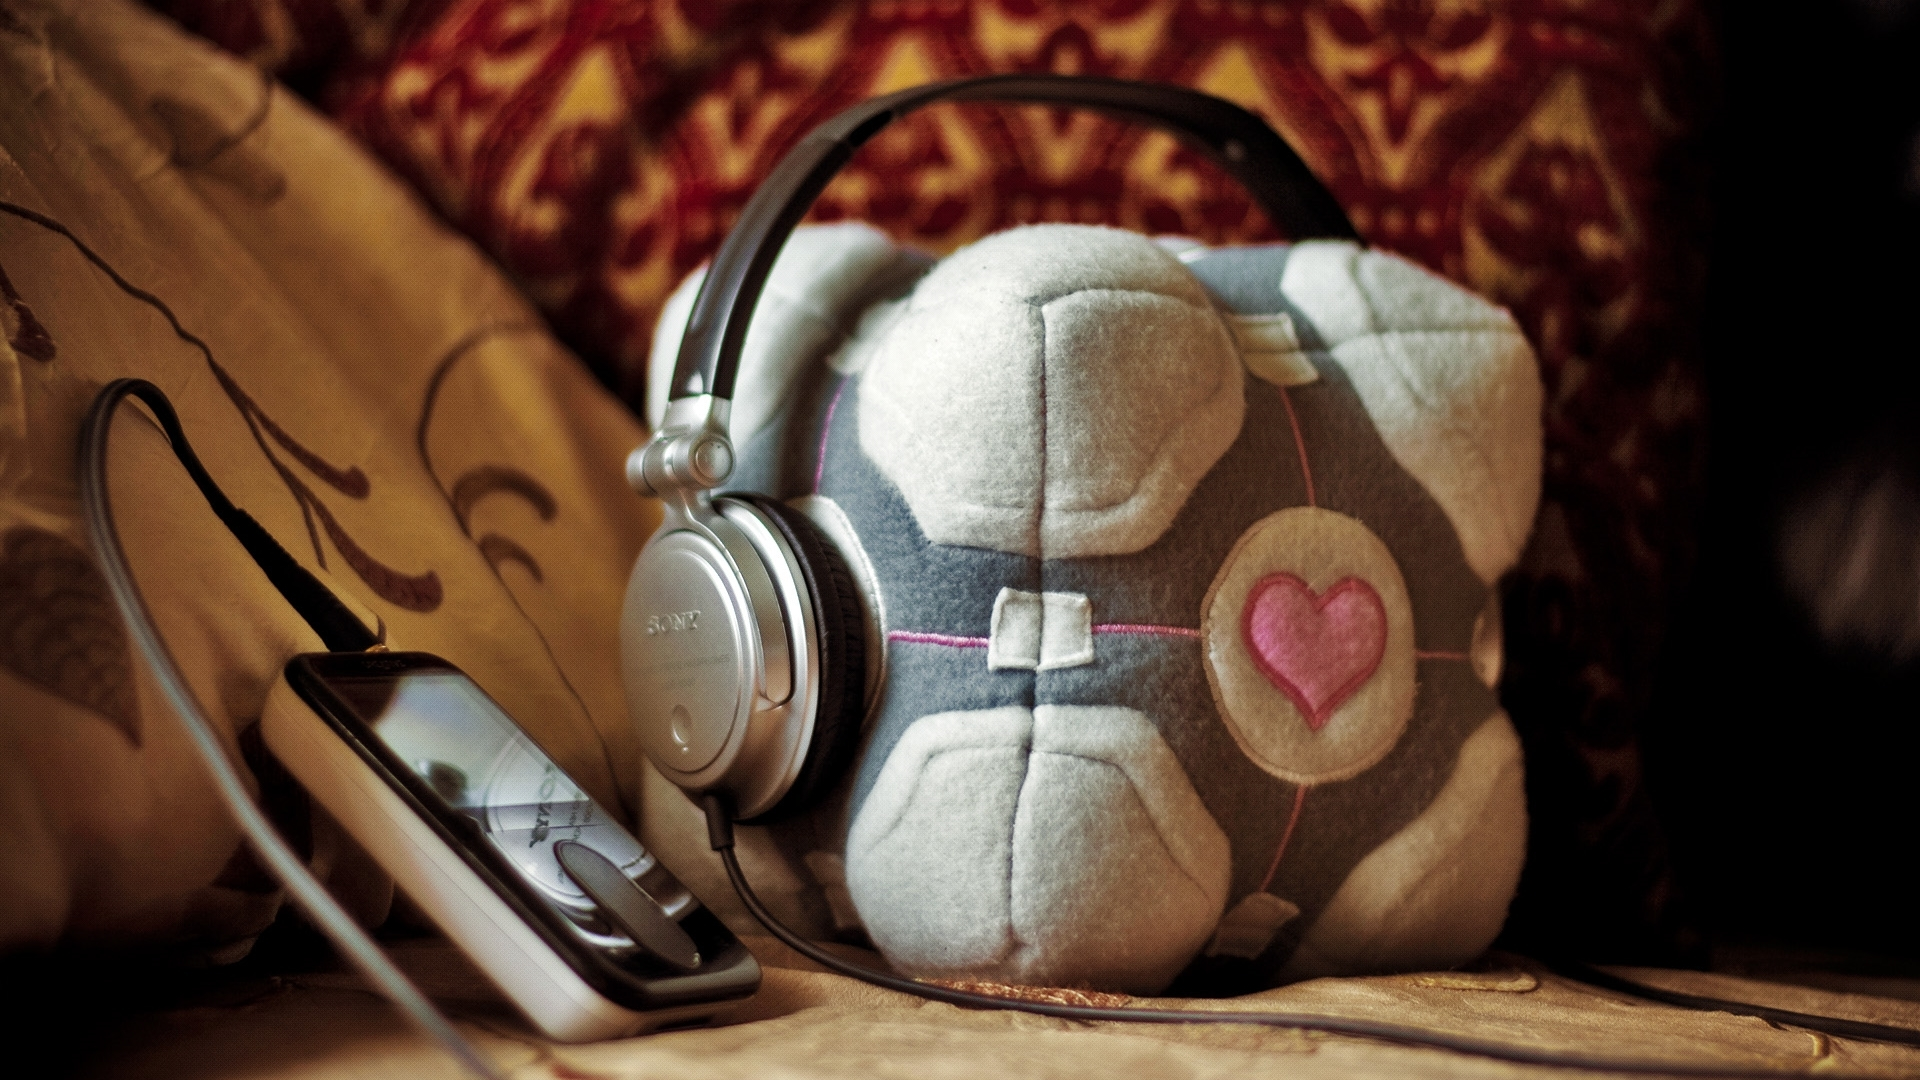 Companion Cube headphones HD Wallpaper